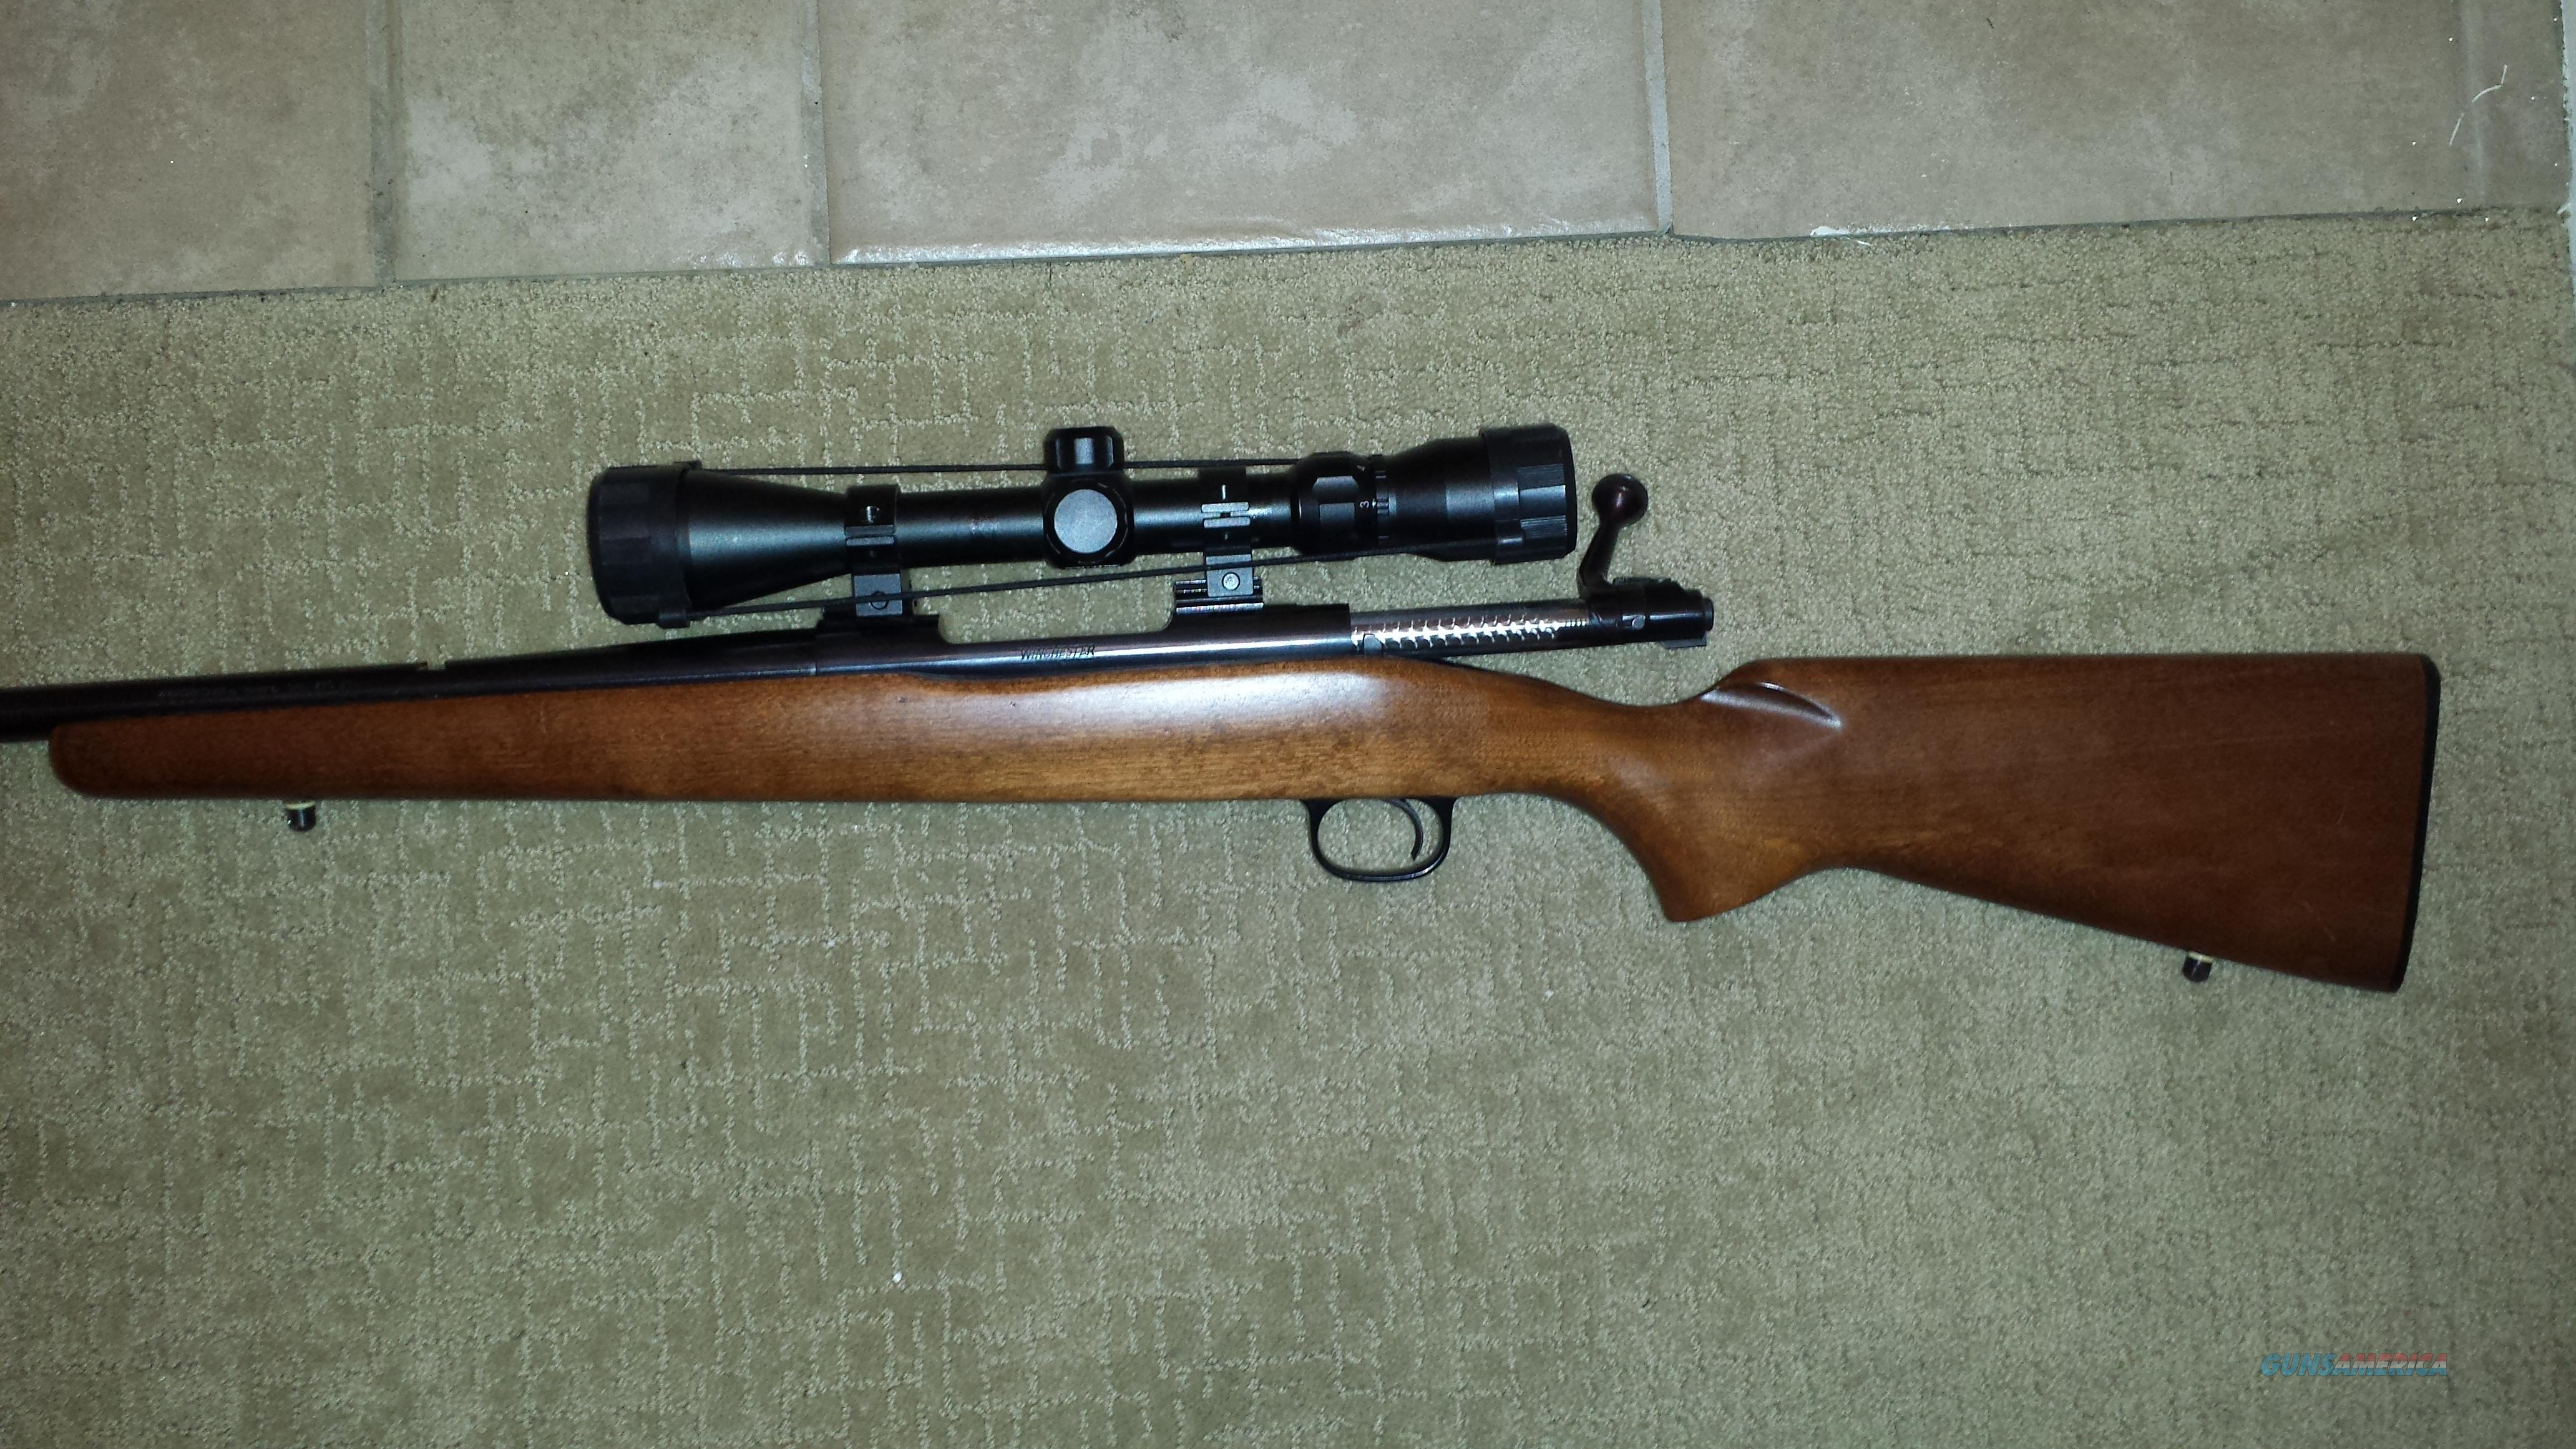 winchester model 70 dating Browse all new and used winchester rifles - model 70 pre-64 for sale and buy with confidence from guns international  the serial number dates to 1953.